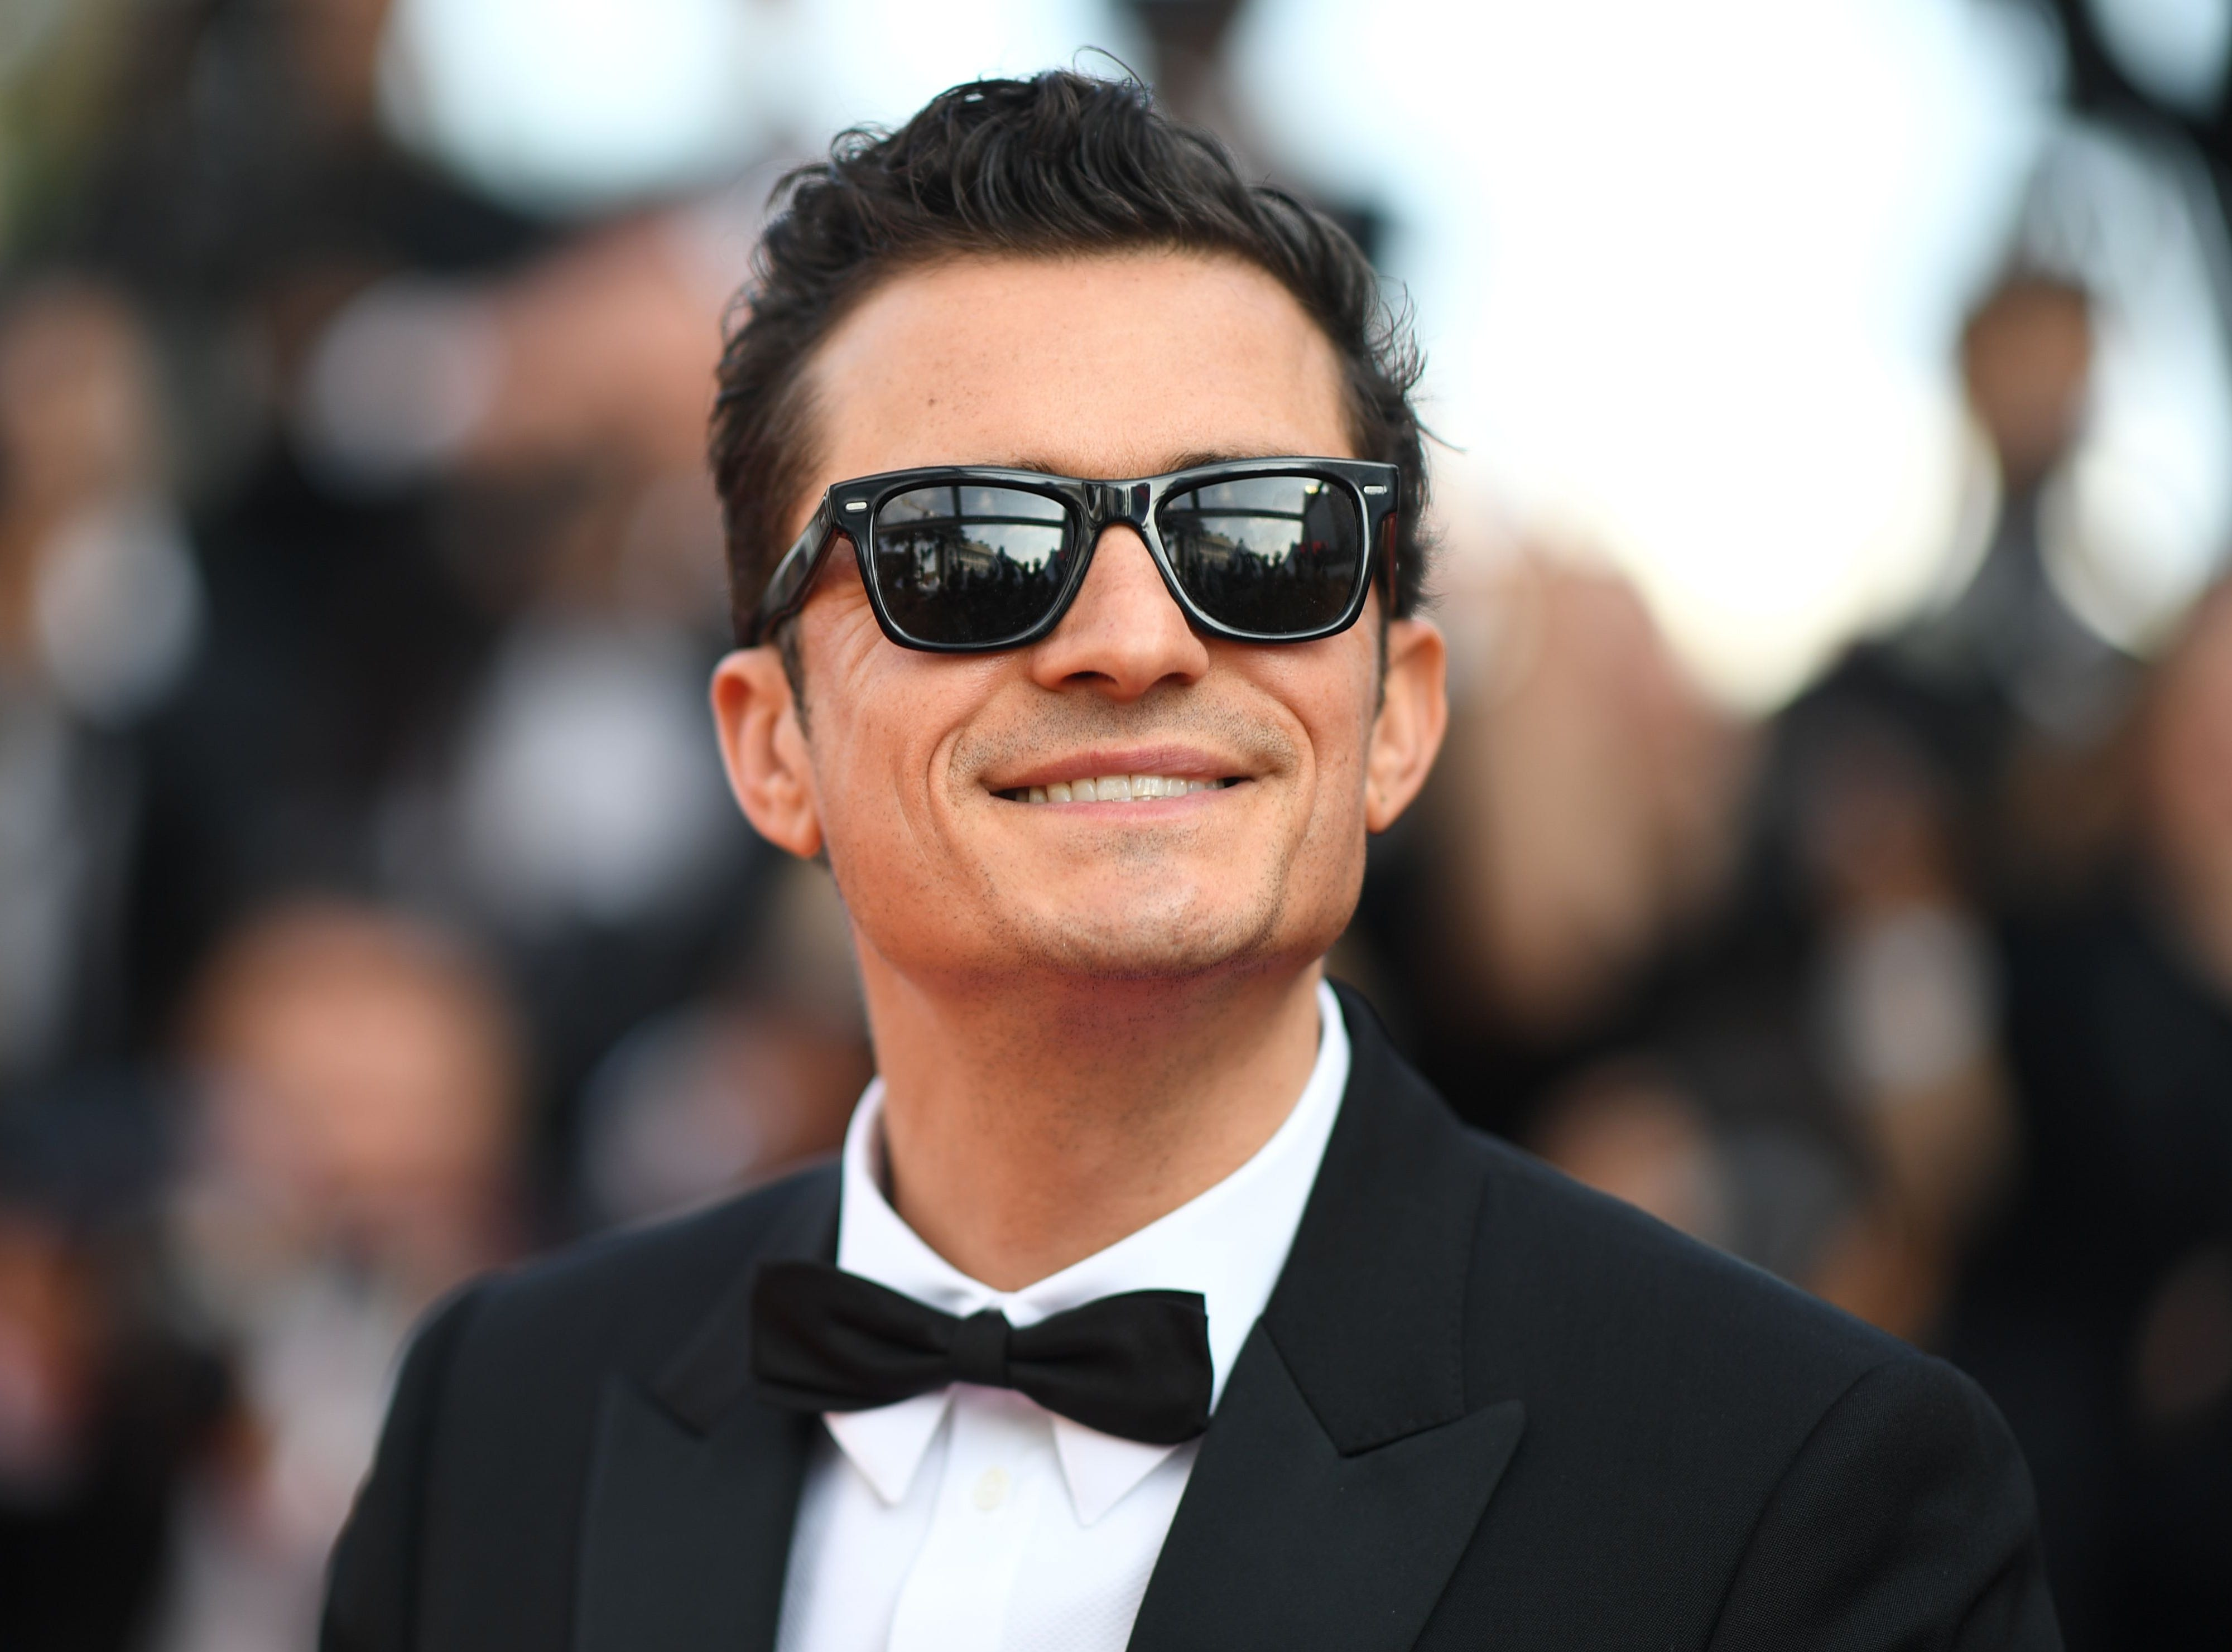 """British actor Orlando Bloom arrives for the screening of the film """"The Traitor (Il Traditore)"""" at the 72nd edition of the Cannes Film Festival in Cannes, southern France, on May 23, 2019."""